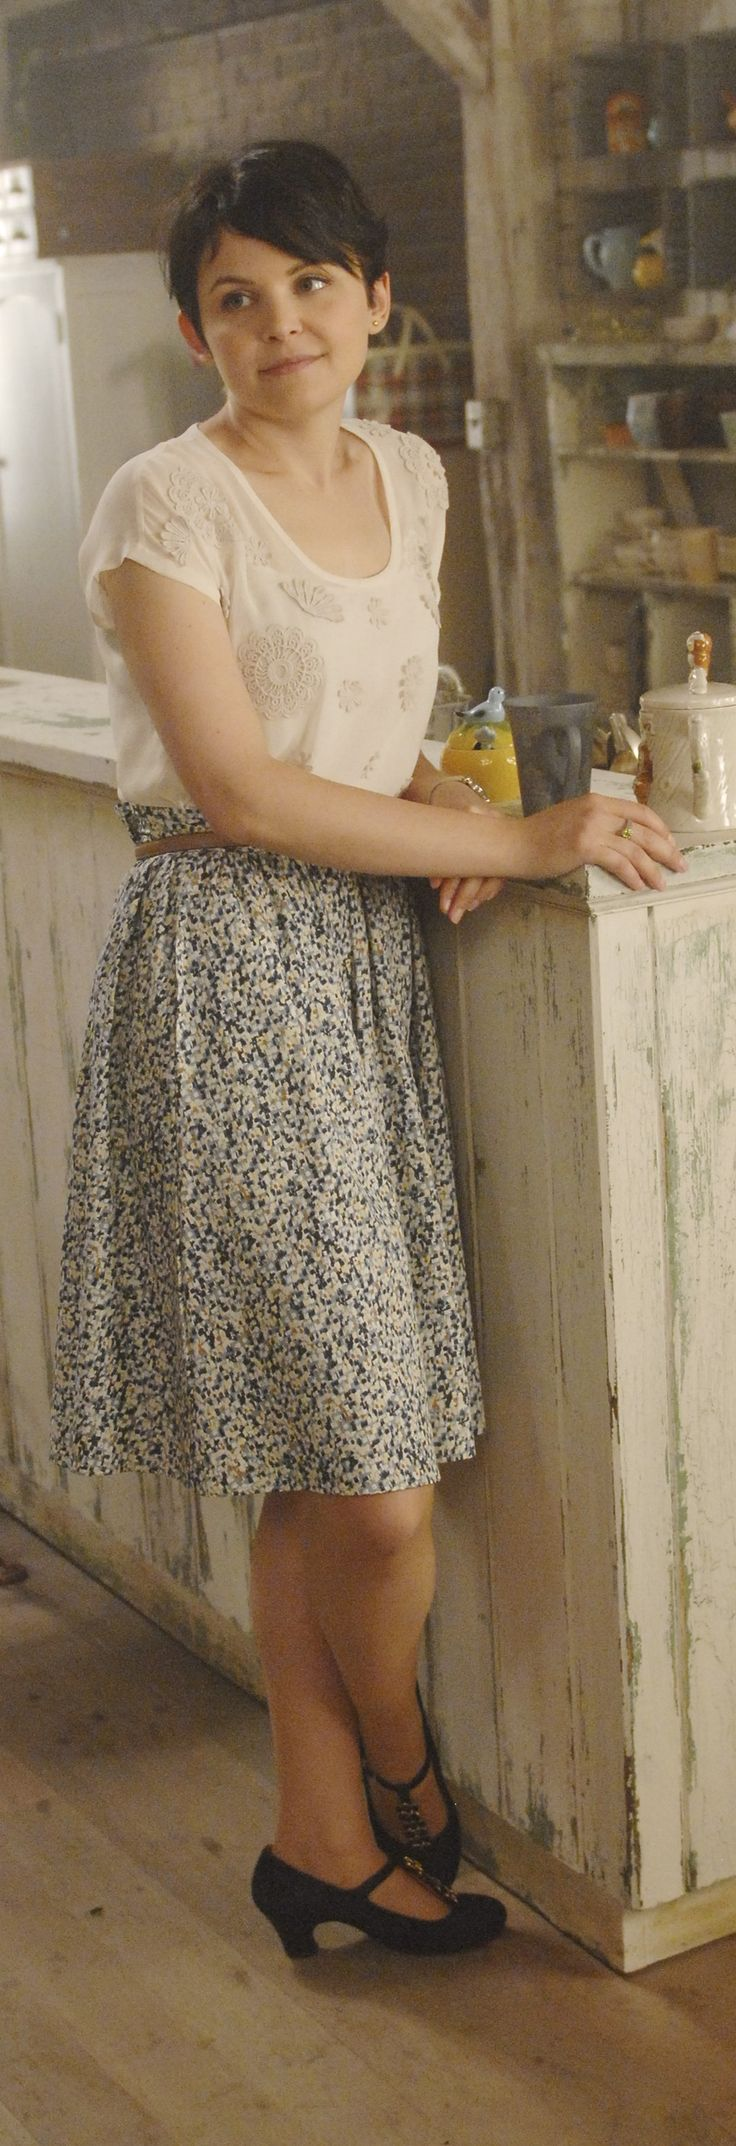 Snow White - Mary Margaret Blanchard (season 1)